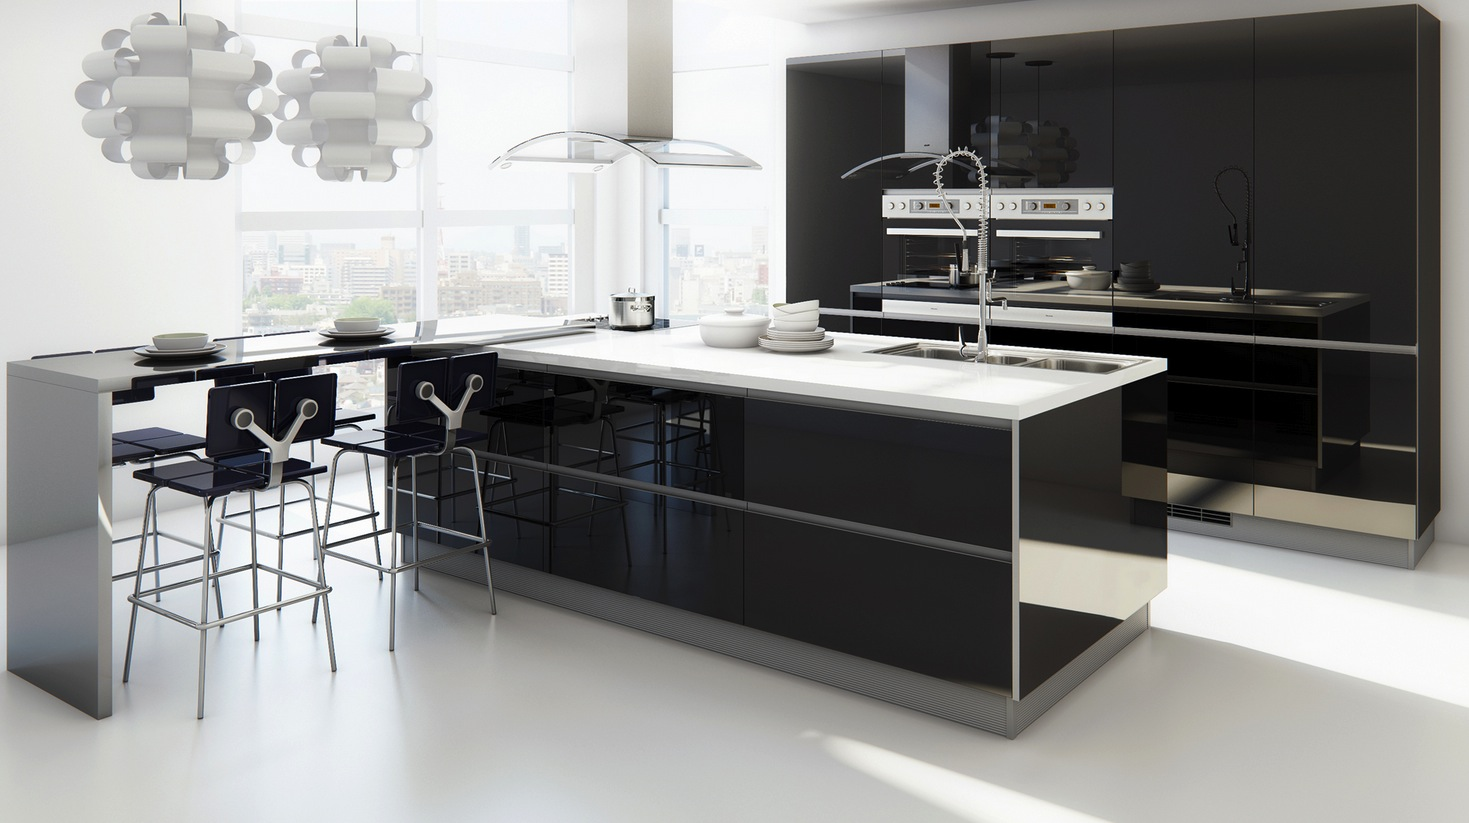 Black Modern Kitchen 12 modern eat-in kitchen designs